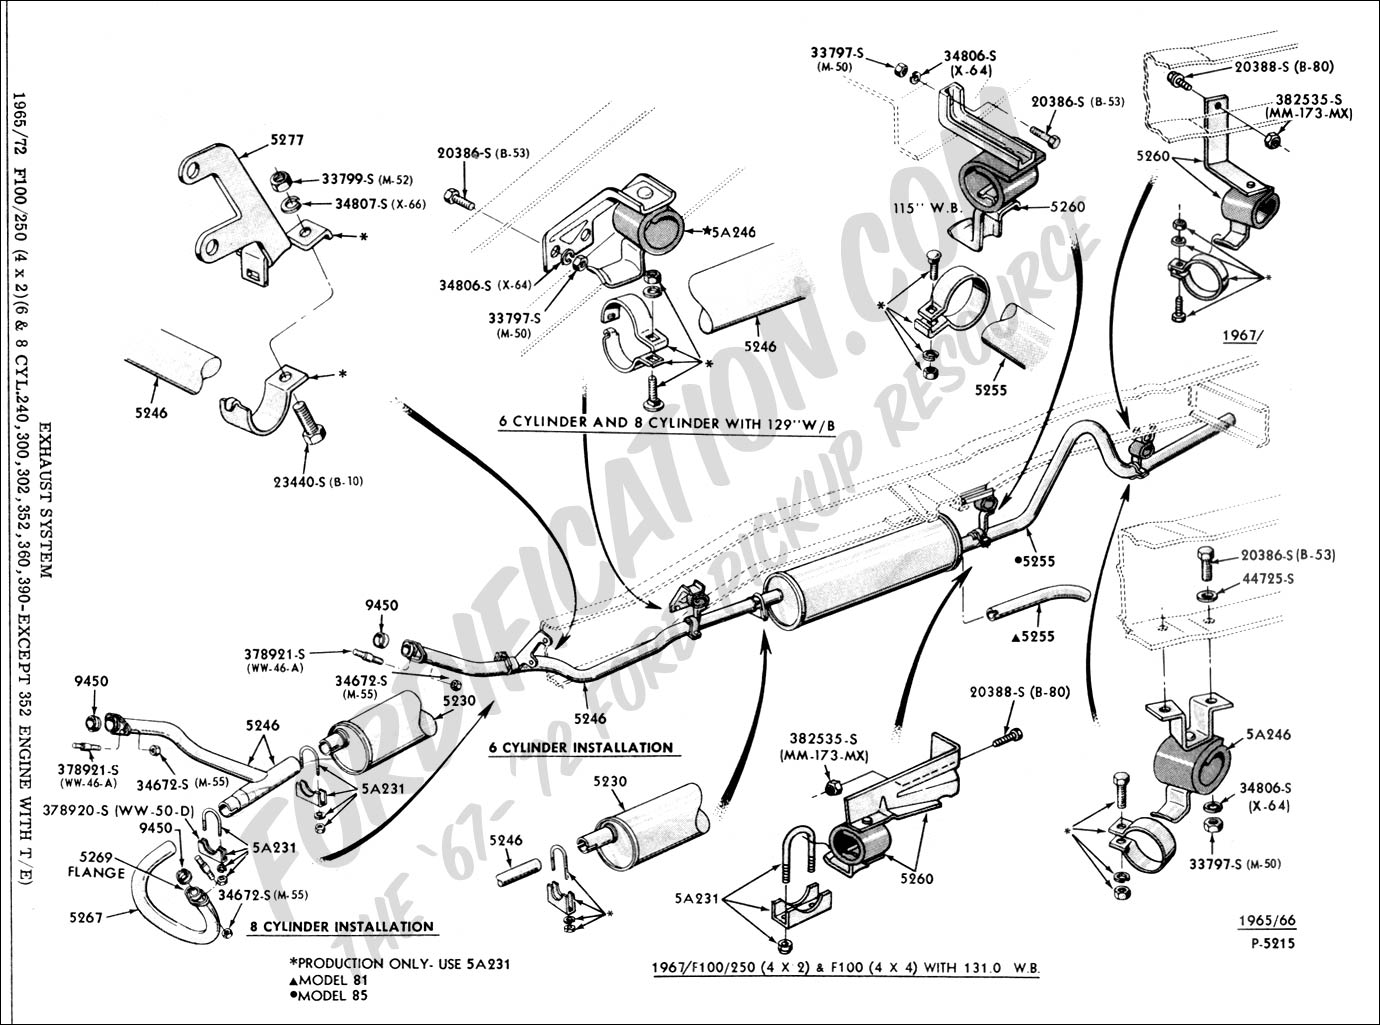 1994 Ford F150 Starter Solenoid Wiring Diagram Best additionally 92 Ford Explorer Trailer Wiring Diagram additionally Cadillac 4 9 Liter Engine Diagram together with 791635 Alternator Blues Confusion 2 as well 84 F150 Wiring Harness. on light wiring diagram as well 1985 ford f 150